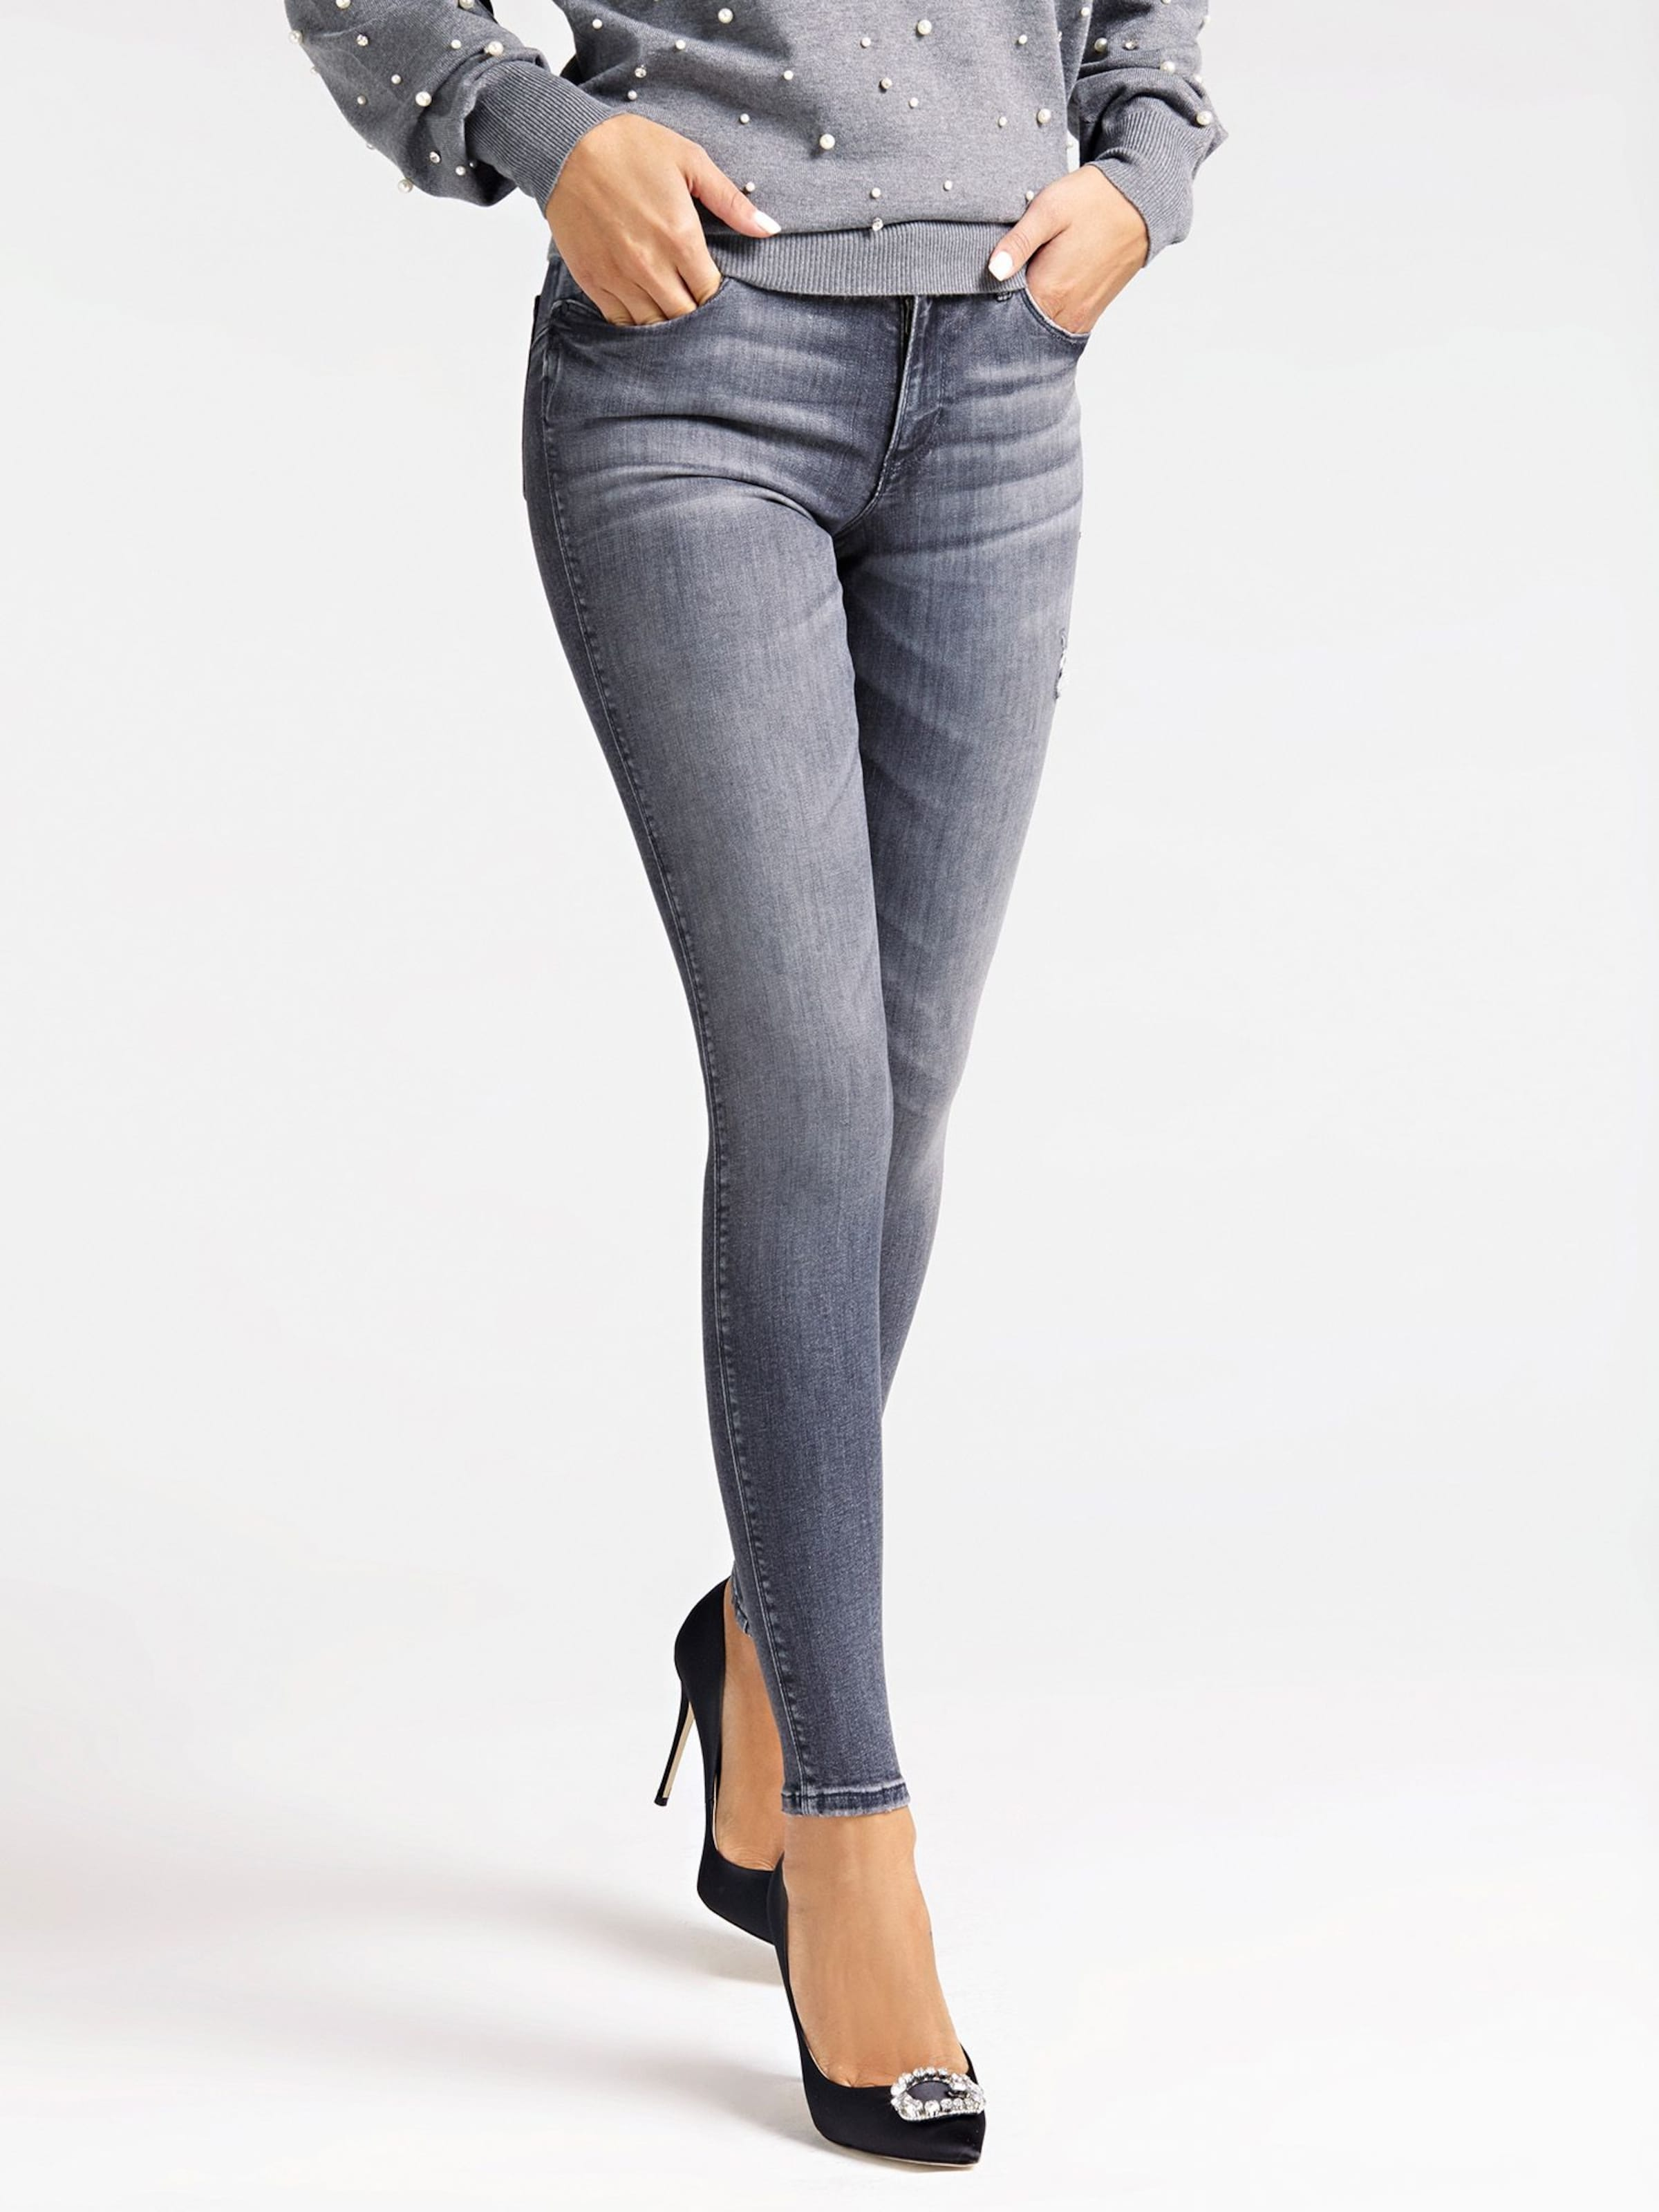 X' In Denim Guess Jeans 'curve Grey b7fyvY6g